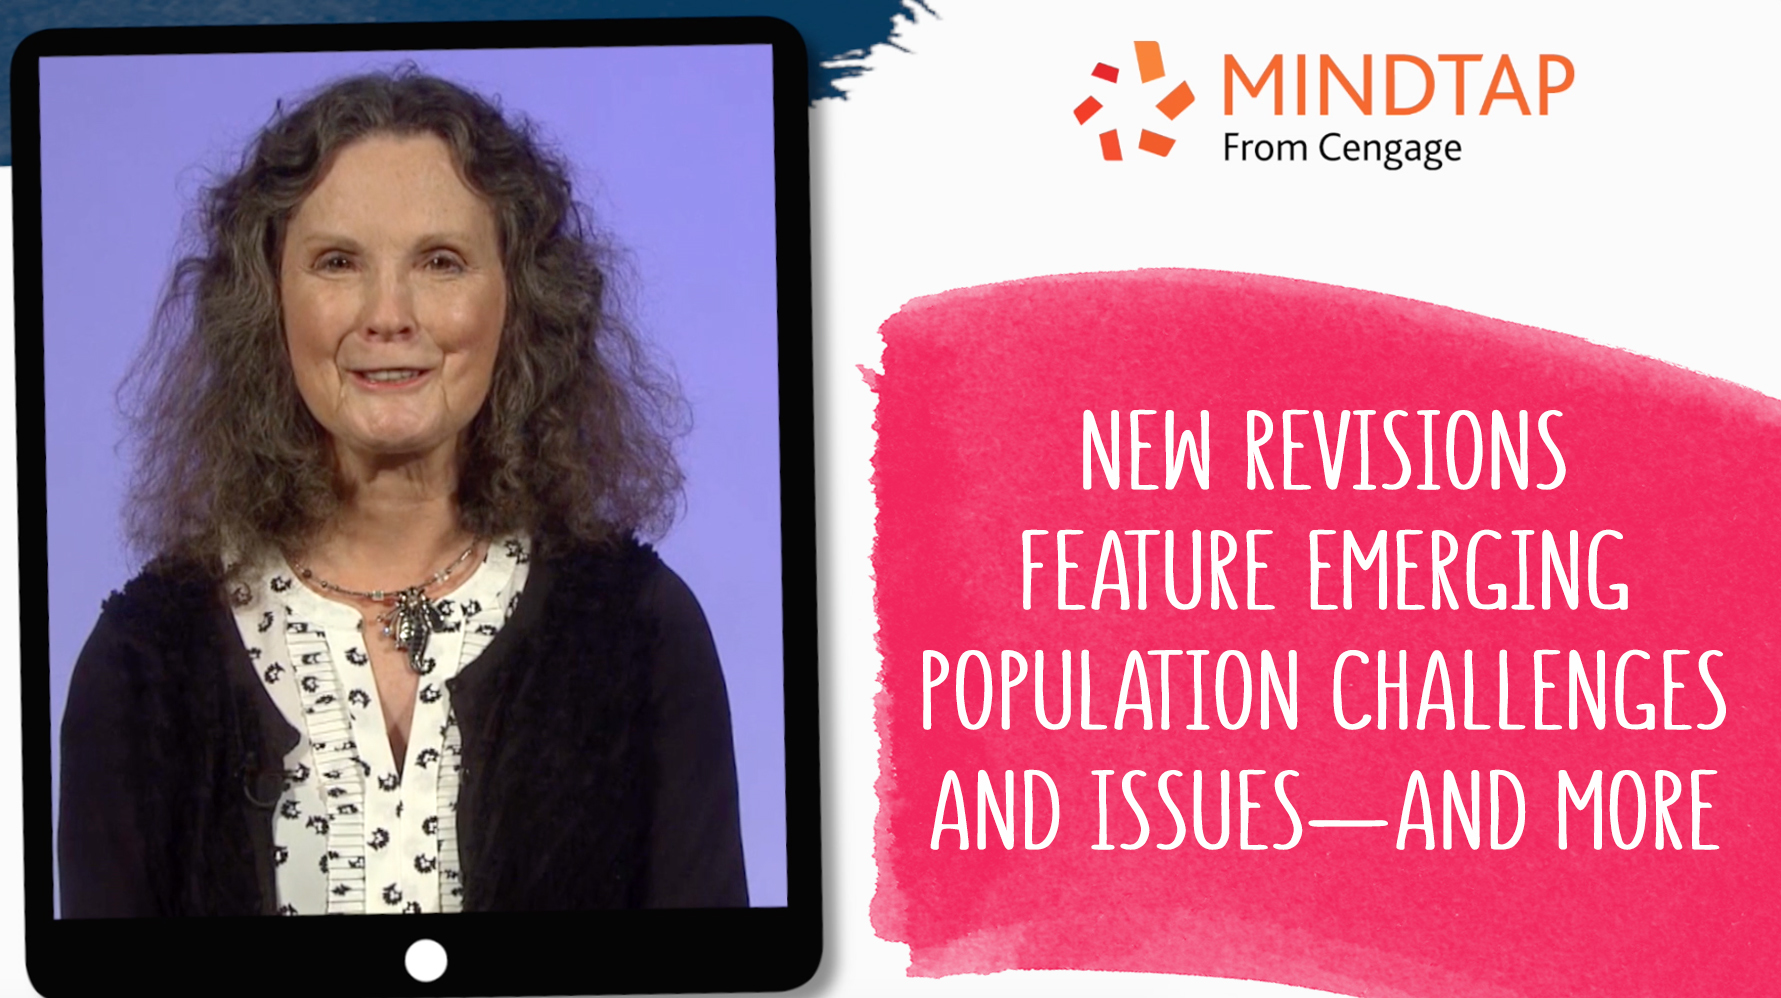 New Revisions Feature Emerging Population Challenges and Issues—and More